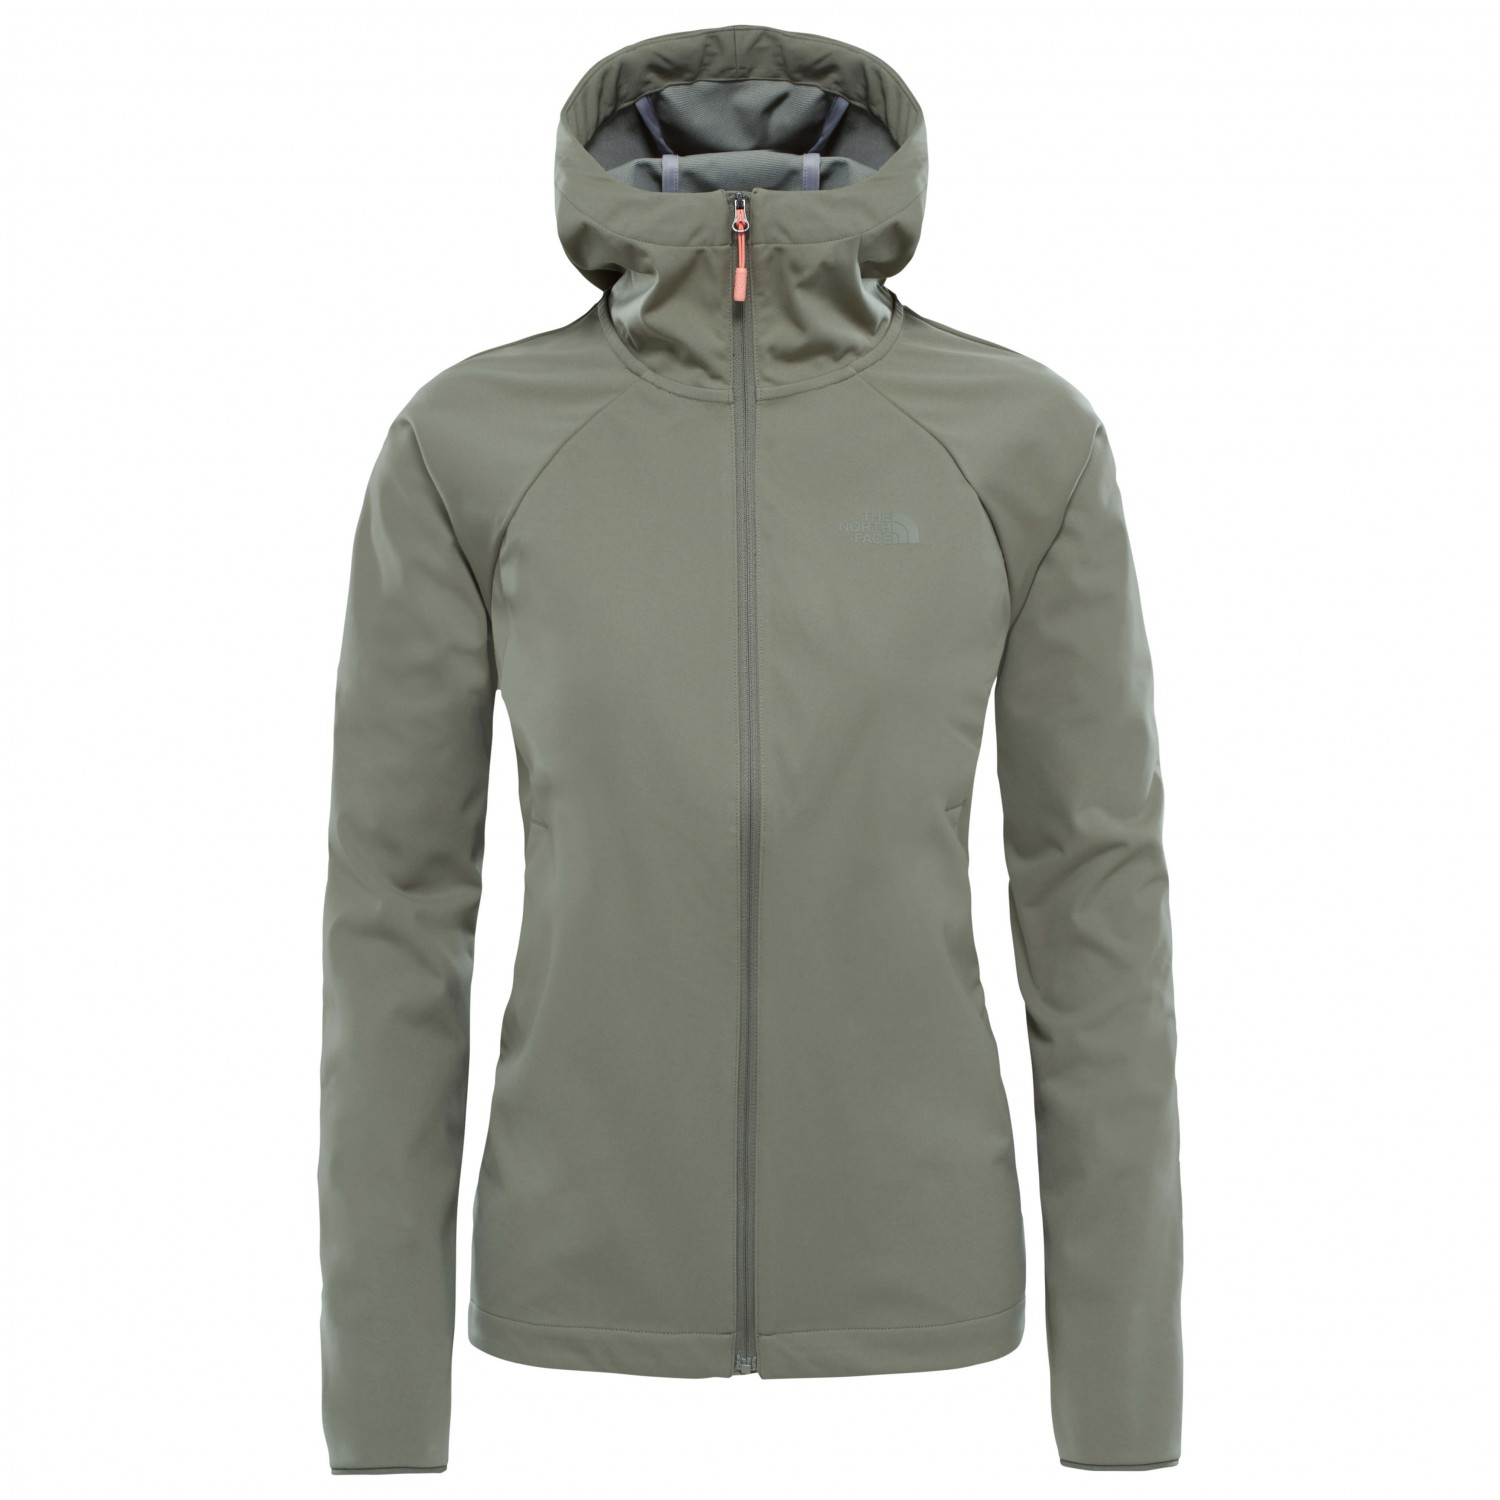 North Kopen Hoodie Softshell Dames Online The Face Inlux gyf7b6